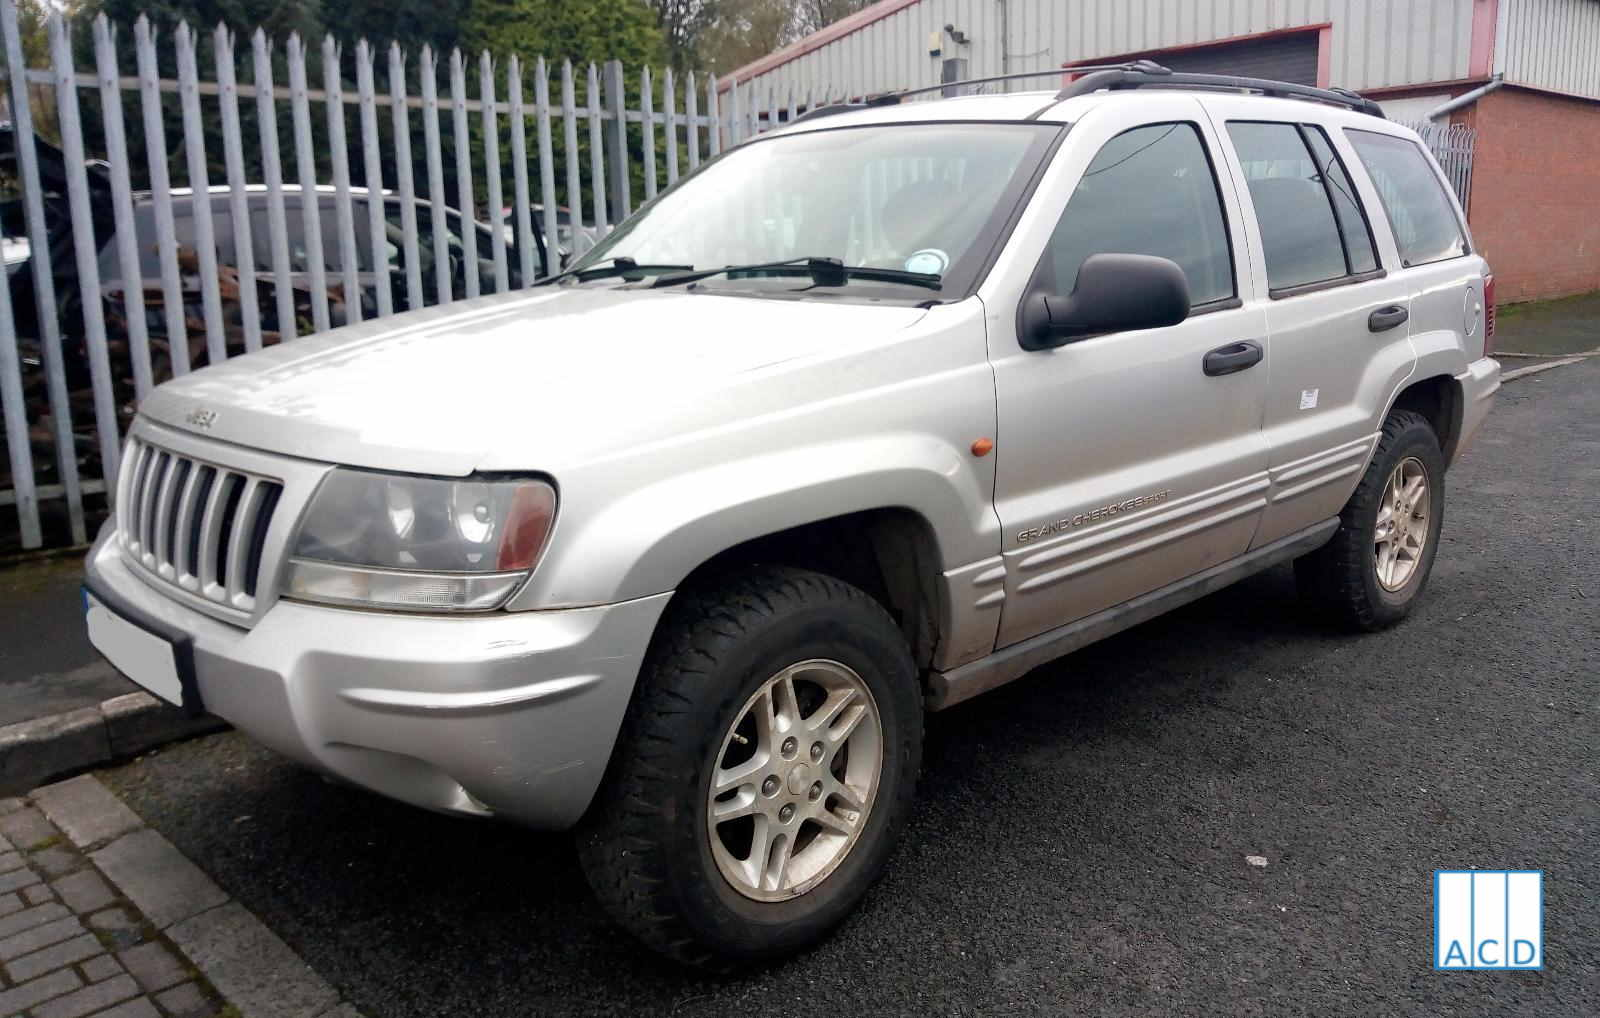 2.7L Grand Cherokee parts for sale